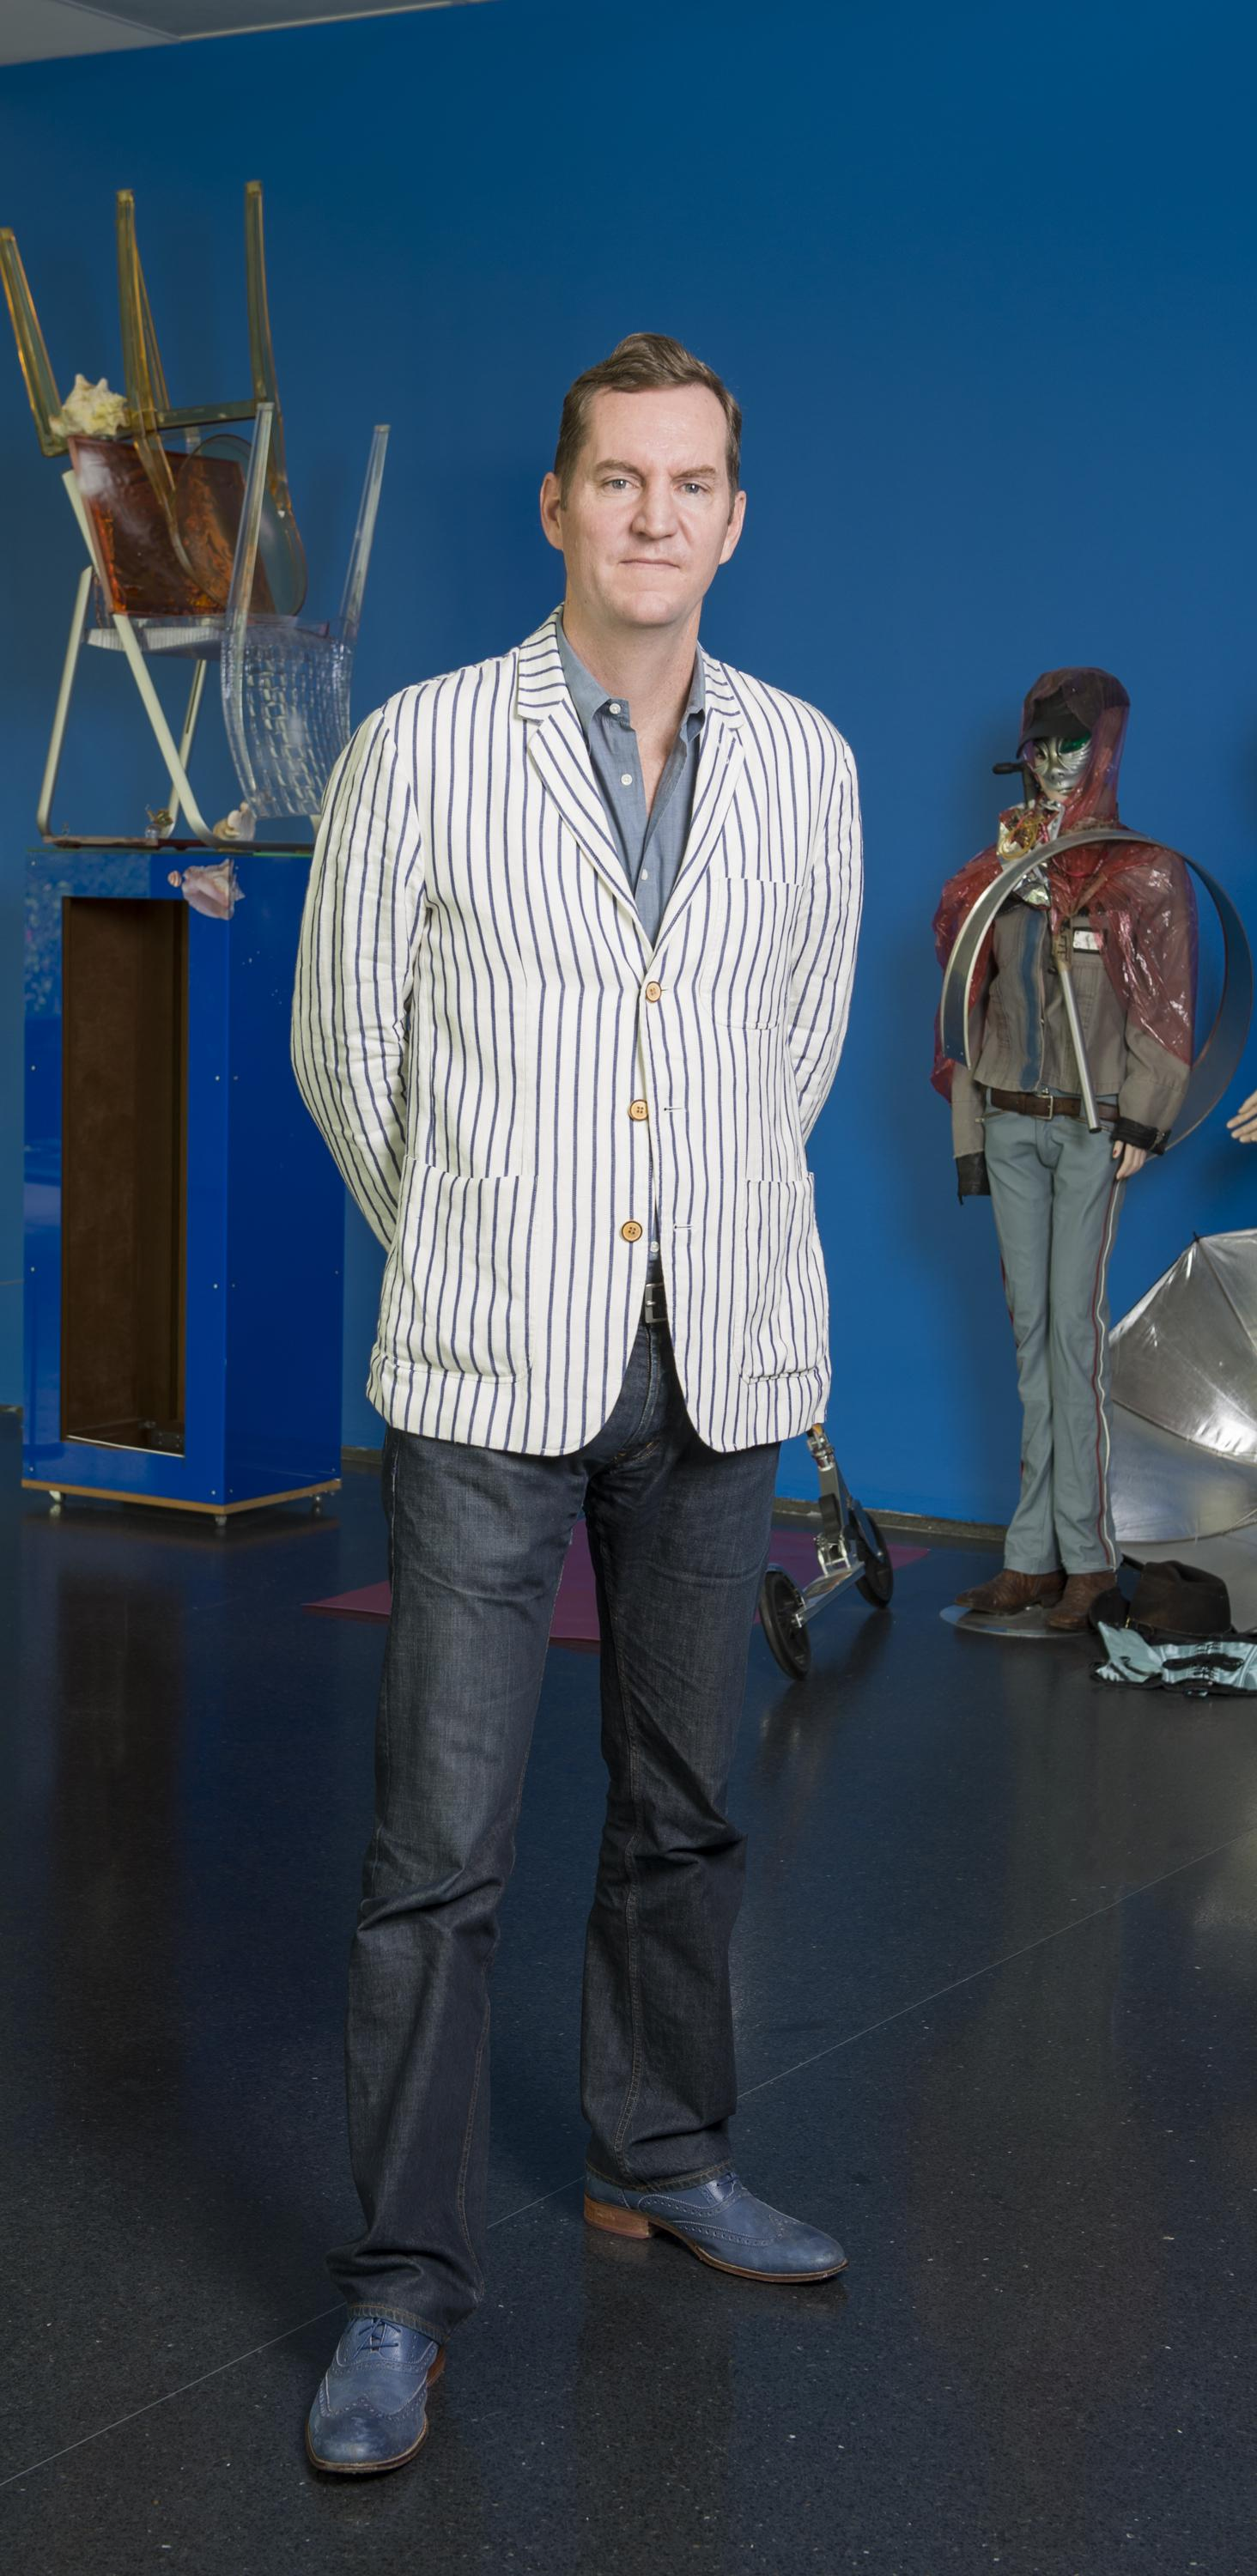 Photograph of a man in a pin-striped blazer standing in front of several Isa Genzken sculptures